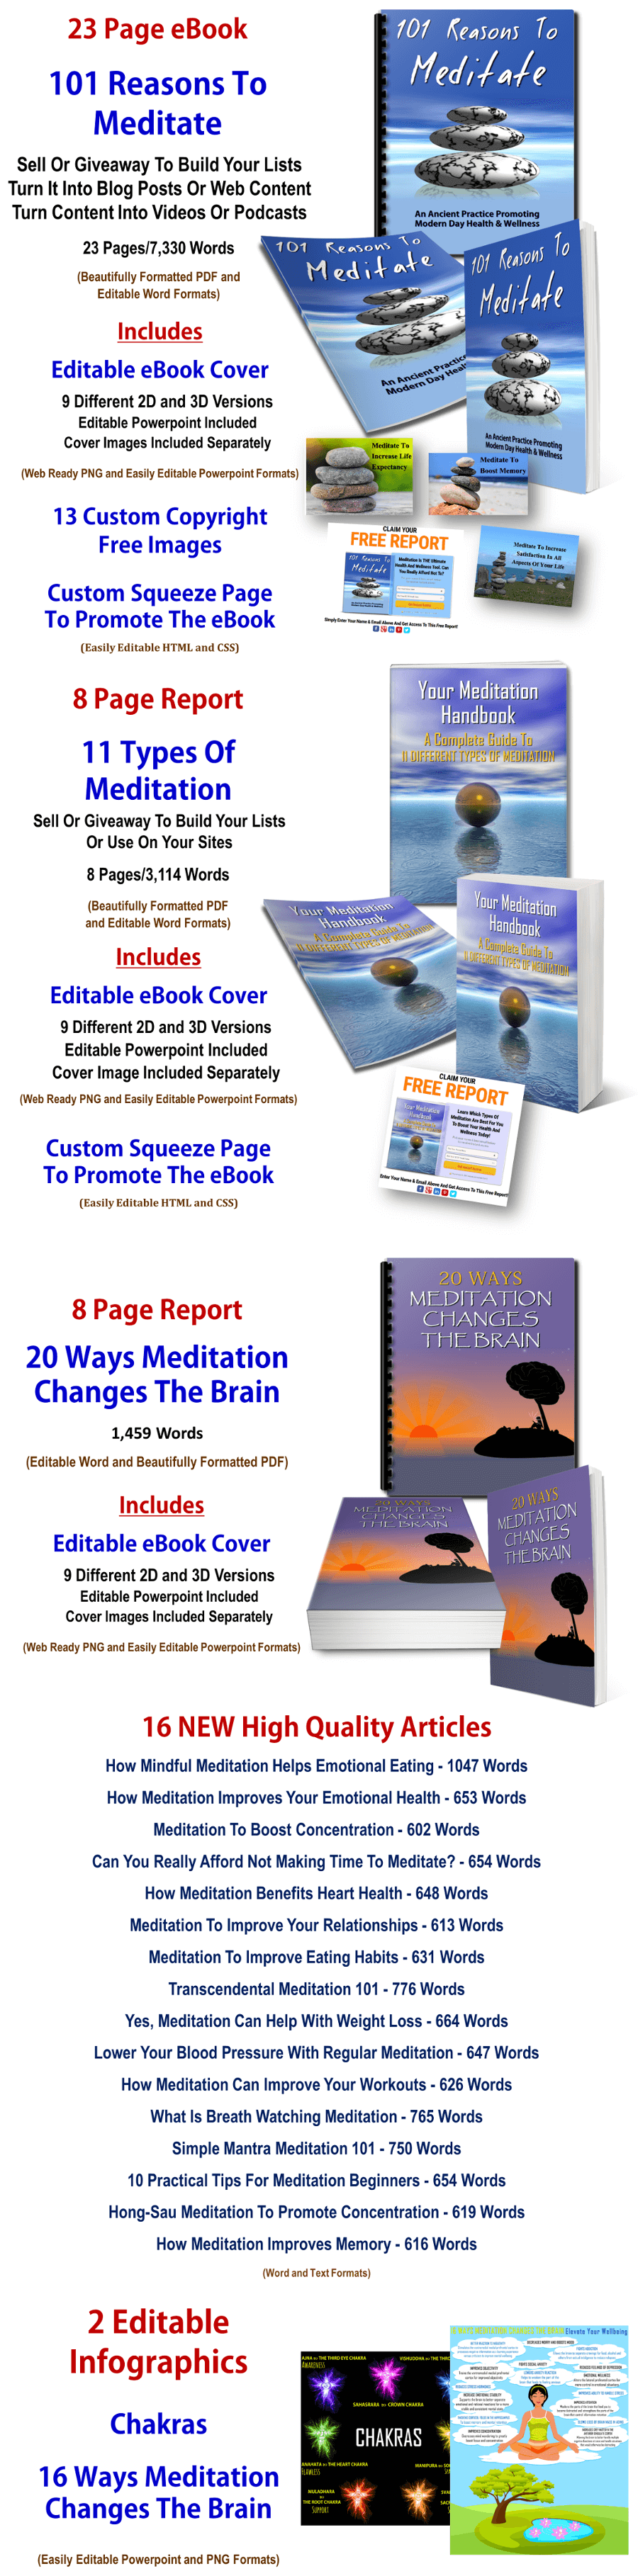 Meditation eBooks, Infographics And Articles PLR Pack